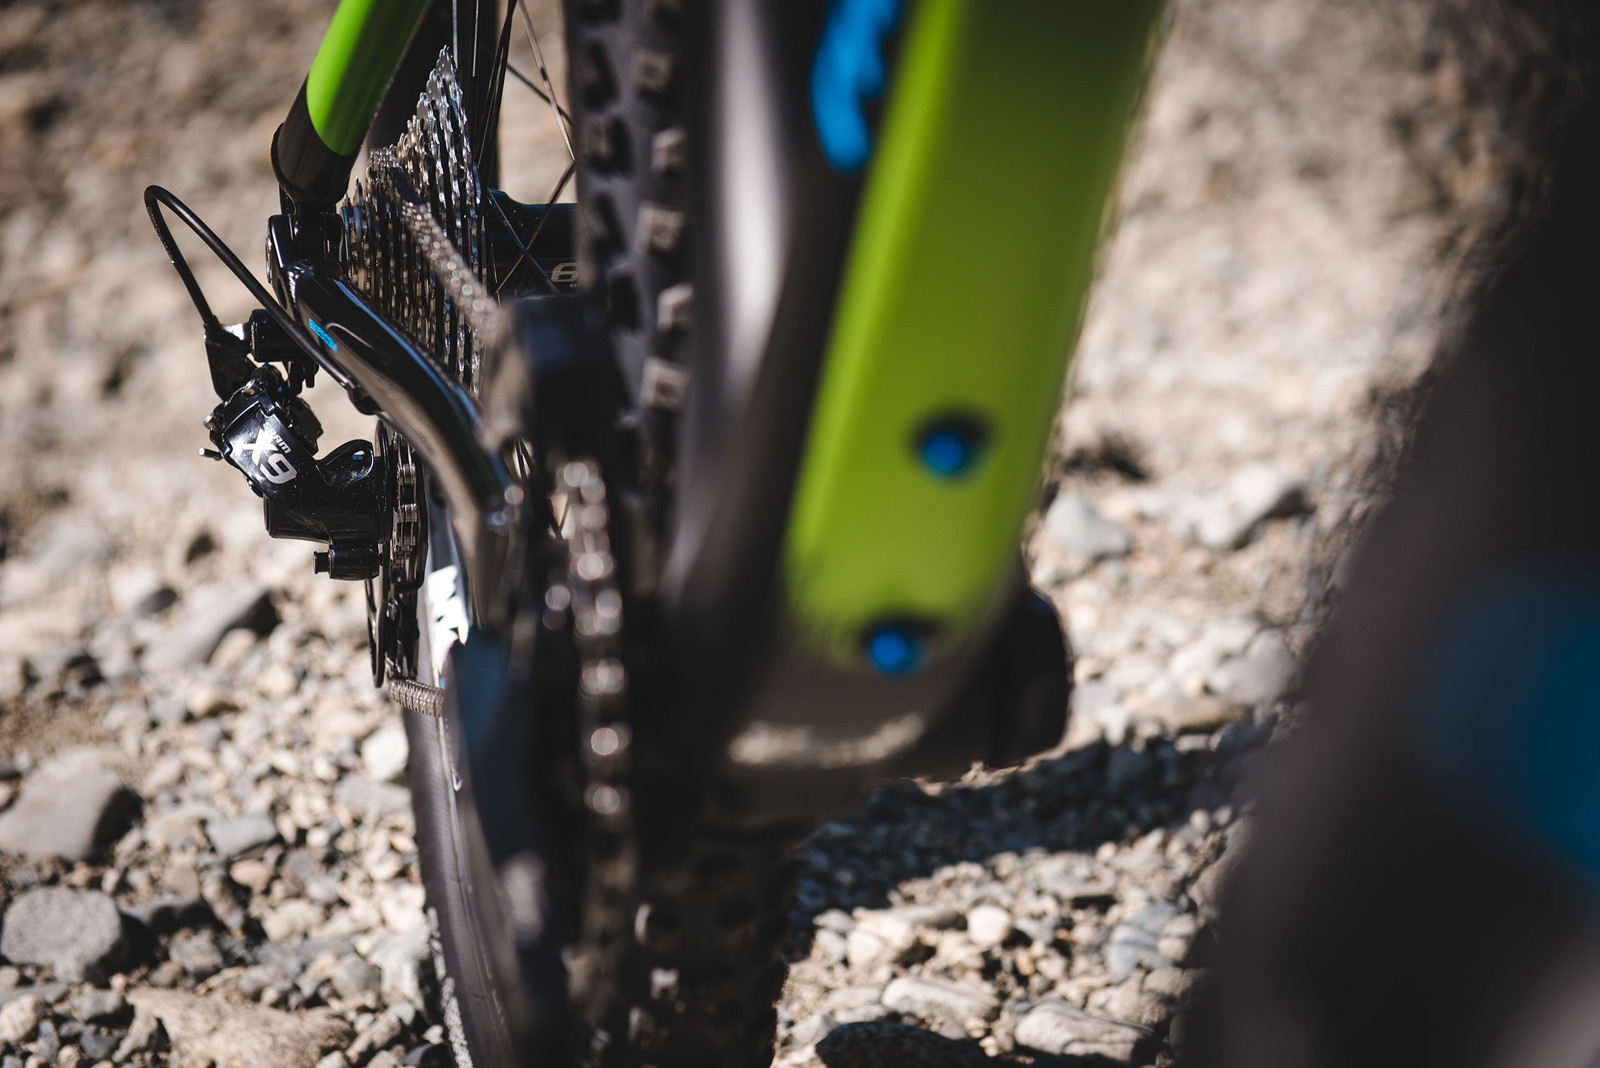 Altitude 770 MSL Rally Edition Drivetrain - First Look: 2014 Rocky Mountain Altitude Rally Edition - Get Rowdy! - Mountain Biking Pictures - Vital MTB